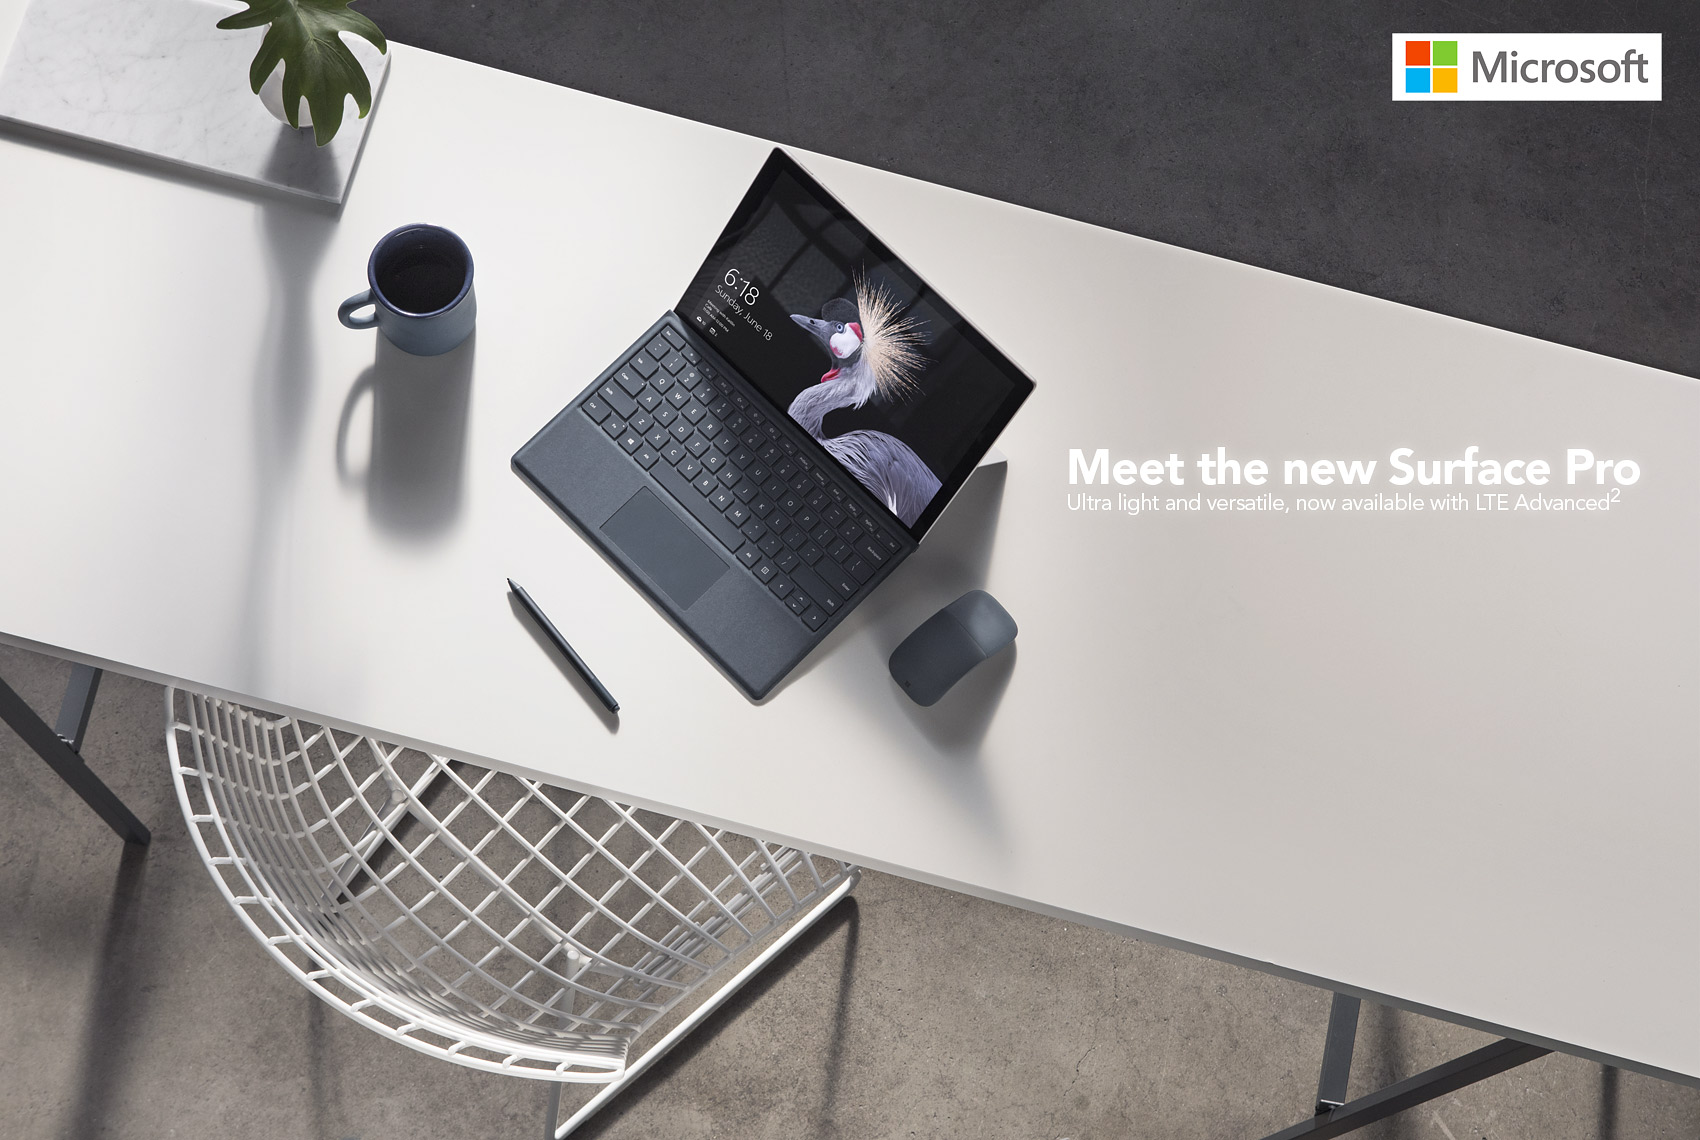 Microsoft advertisement by wildlife photographer Brad Wilson